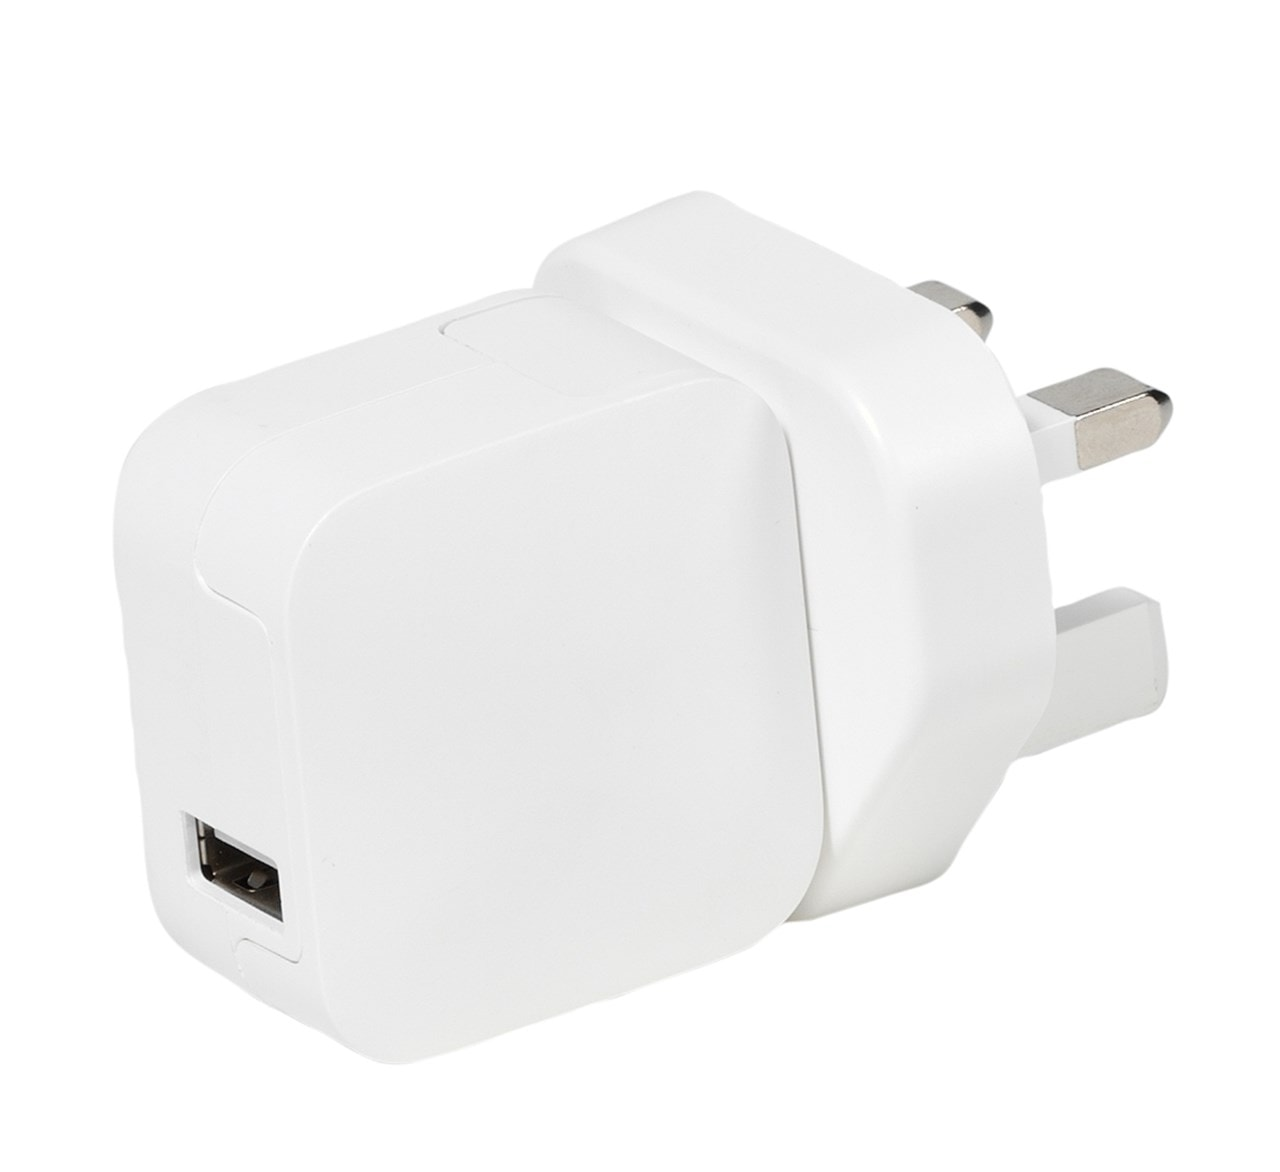 Vivanco USB Plug - 1